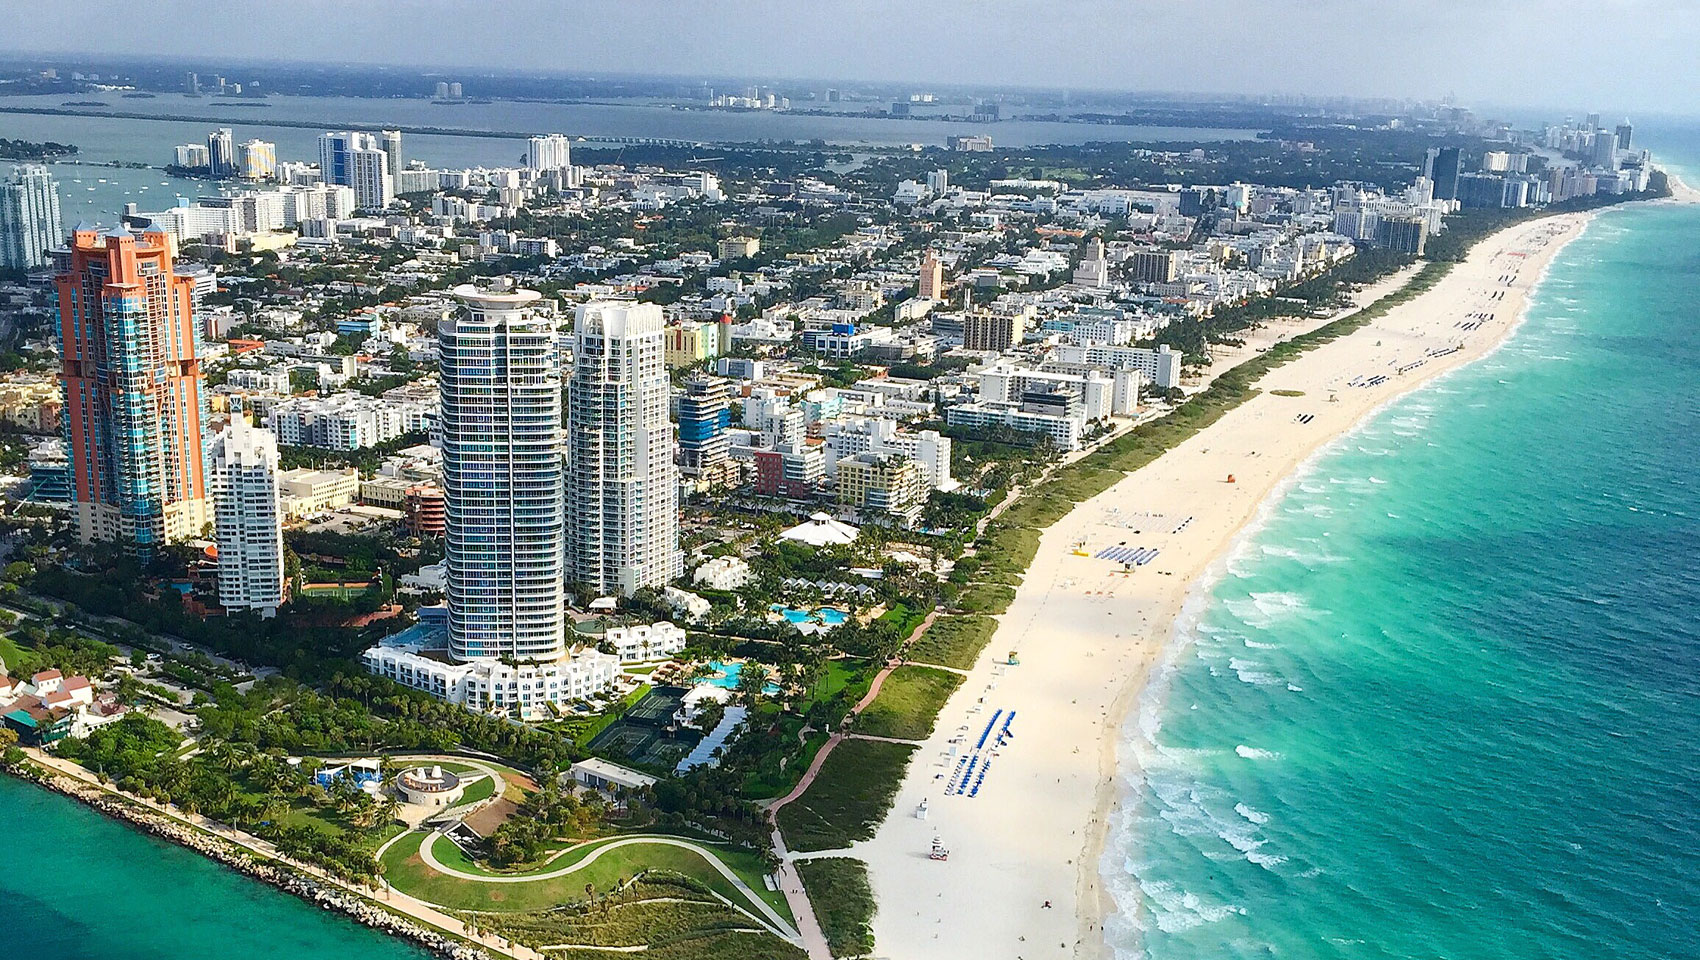 south-beach-miami-from-nyonair-flight-in-may-c7ab85cd.jpg